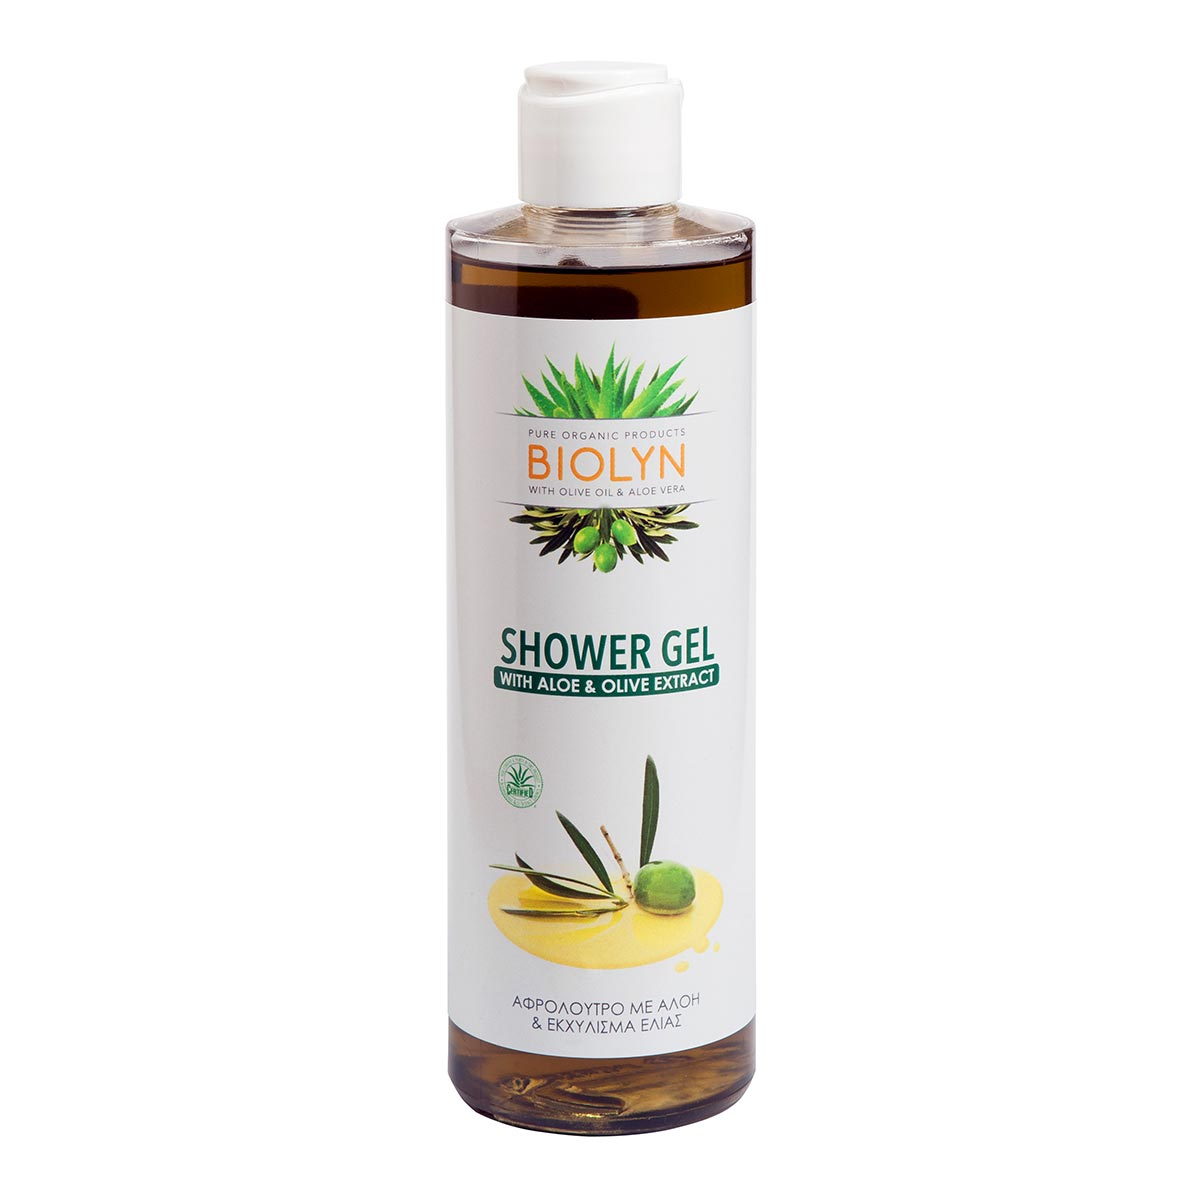 SHOWER GEL with Aloe & Olive Extract